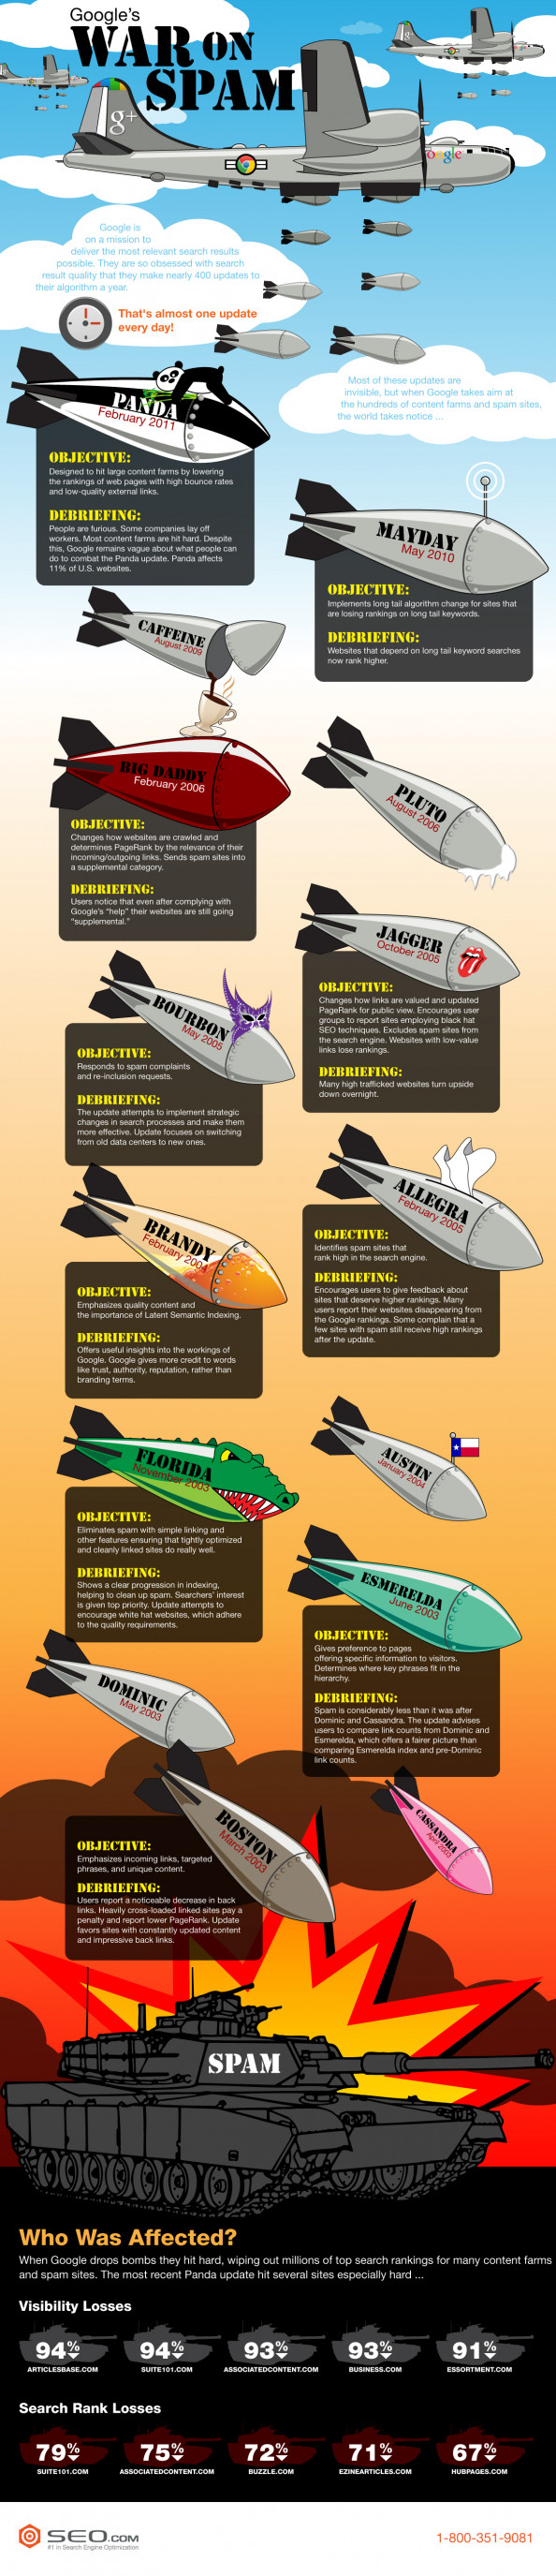 Google's  War on Spam  Infographic